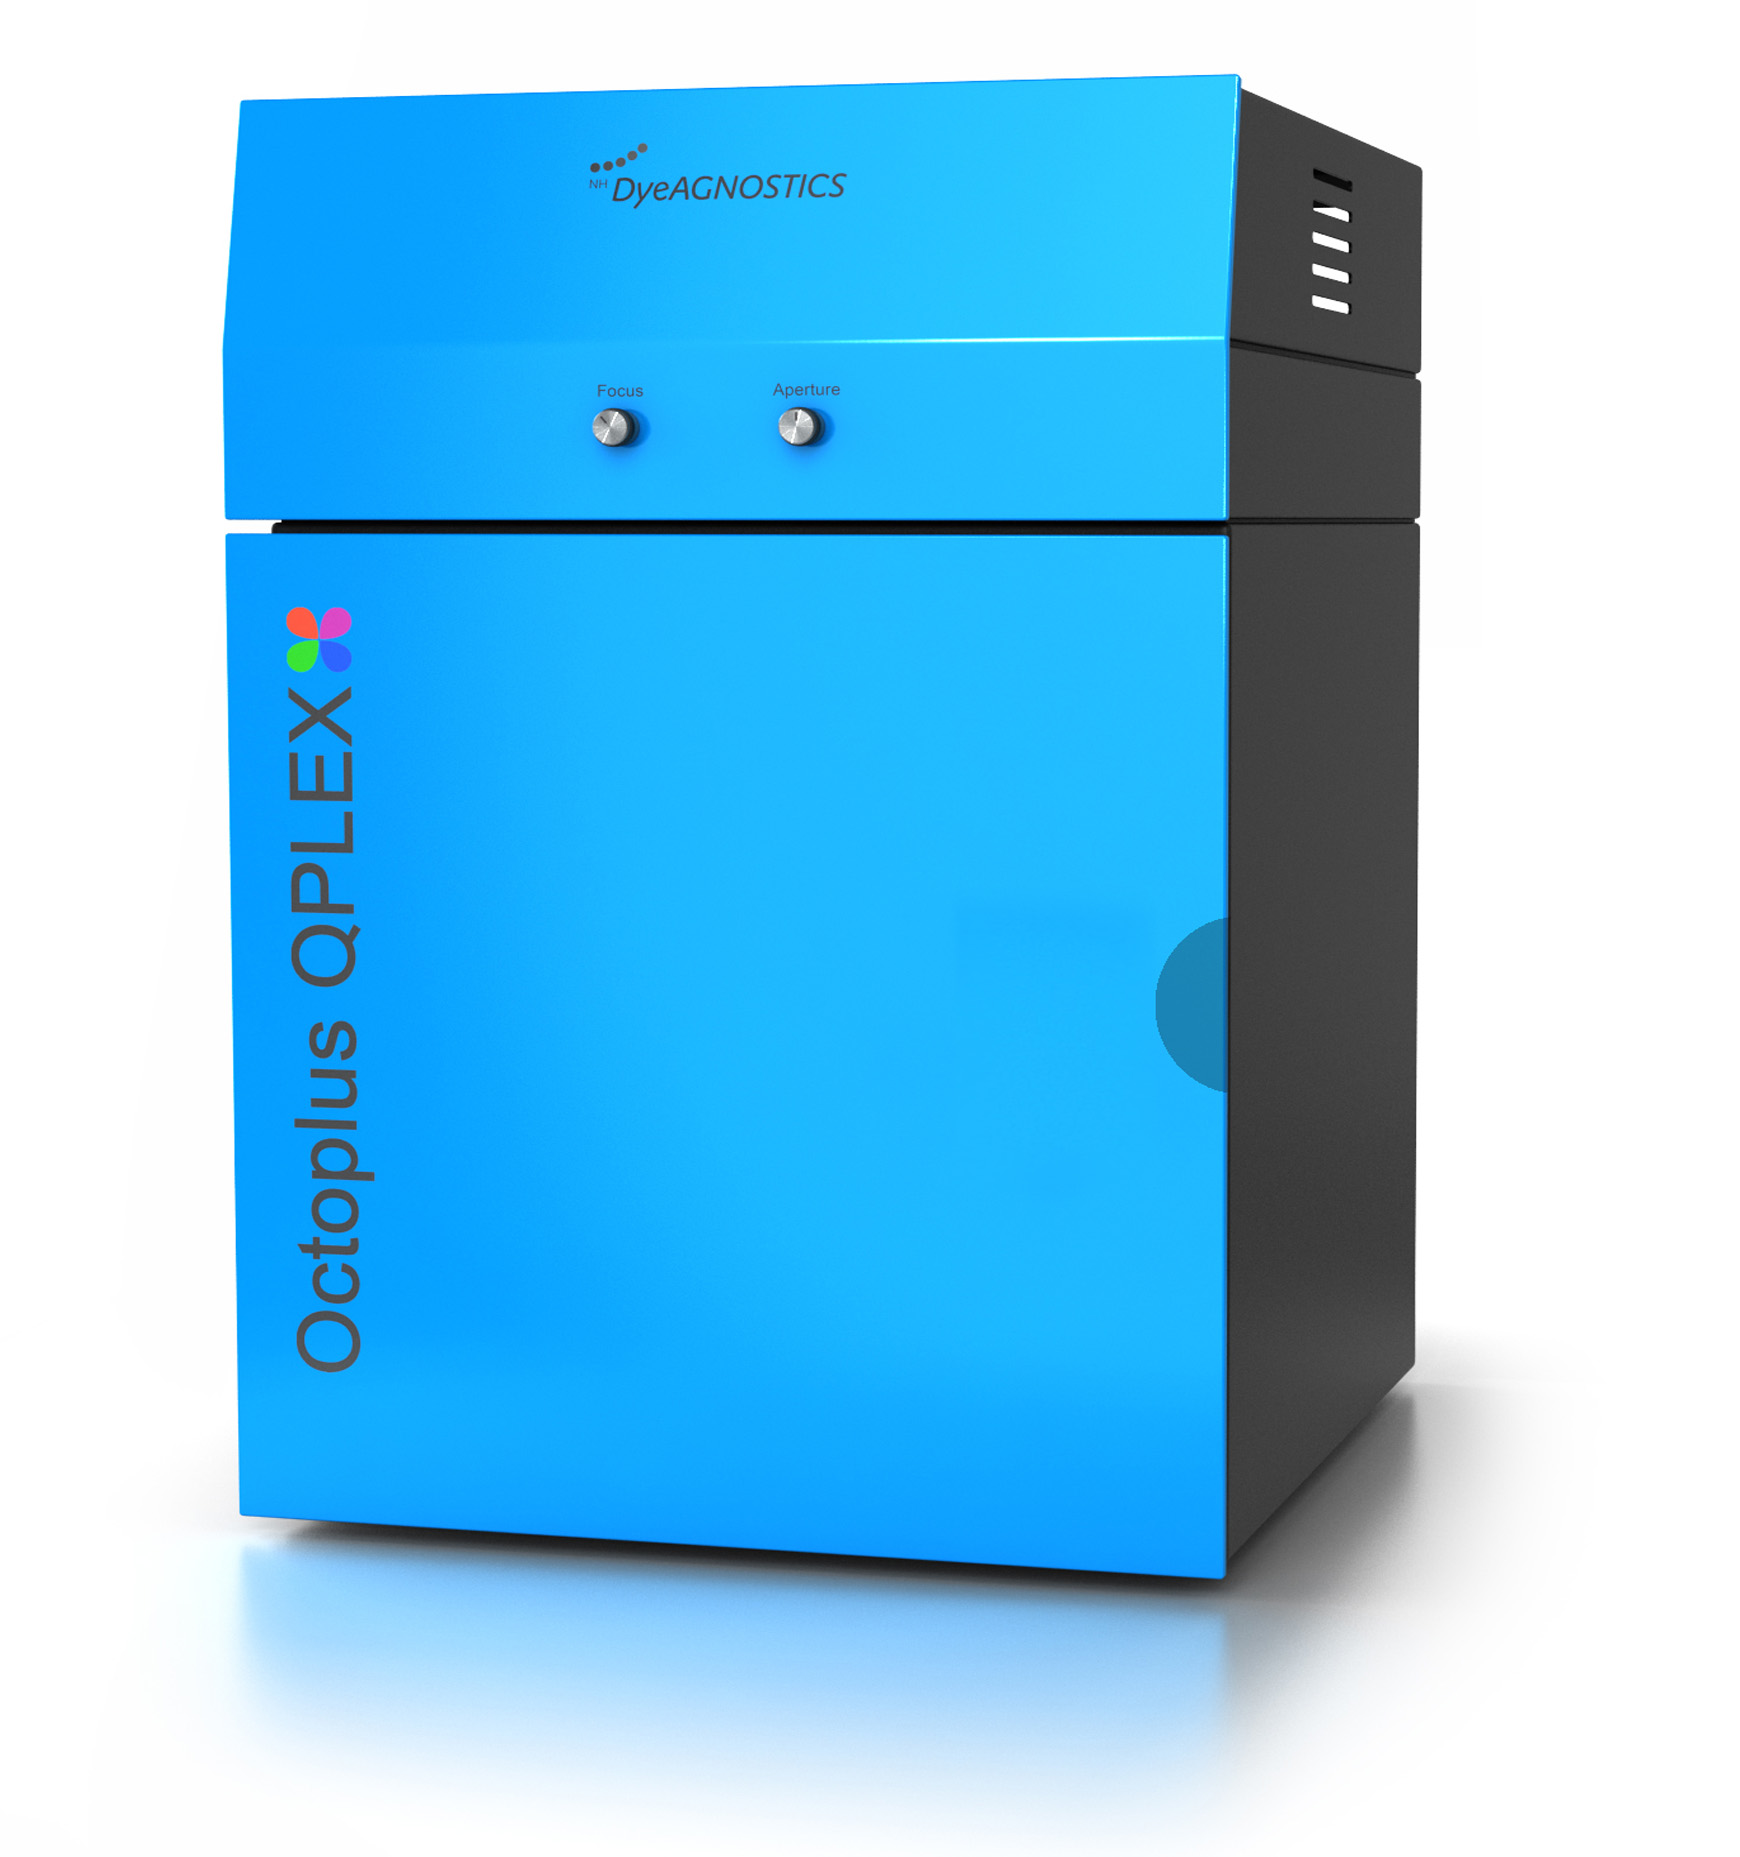 Image of Octoplus QPLEX for powerful and fast 2D-Gel Analysis